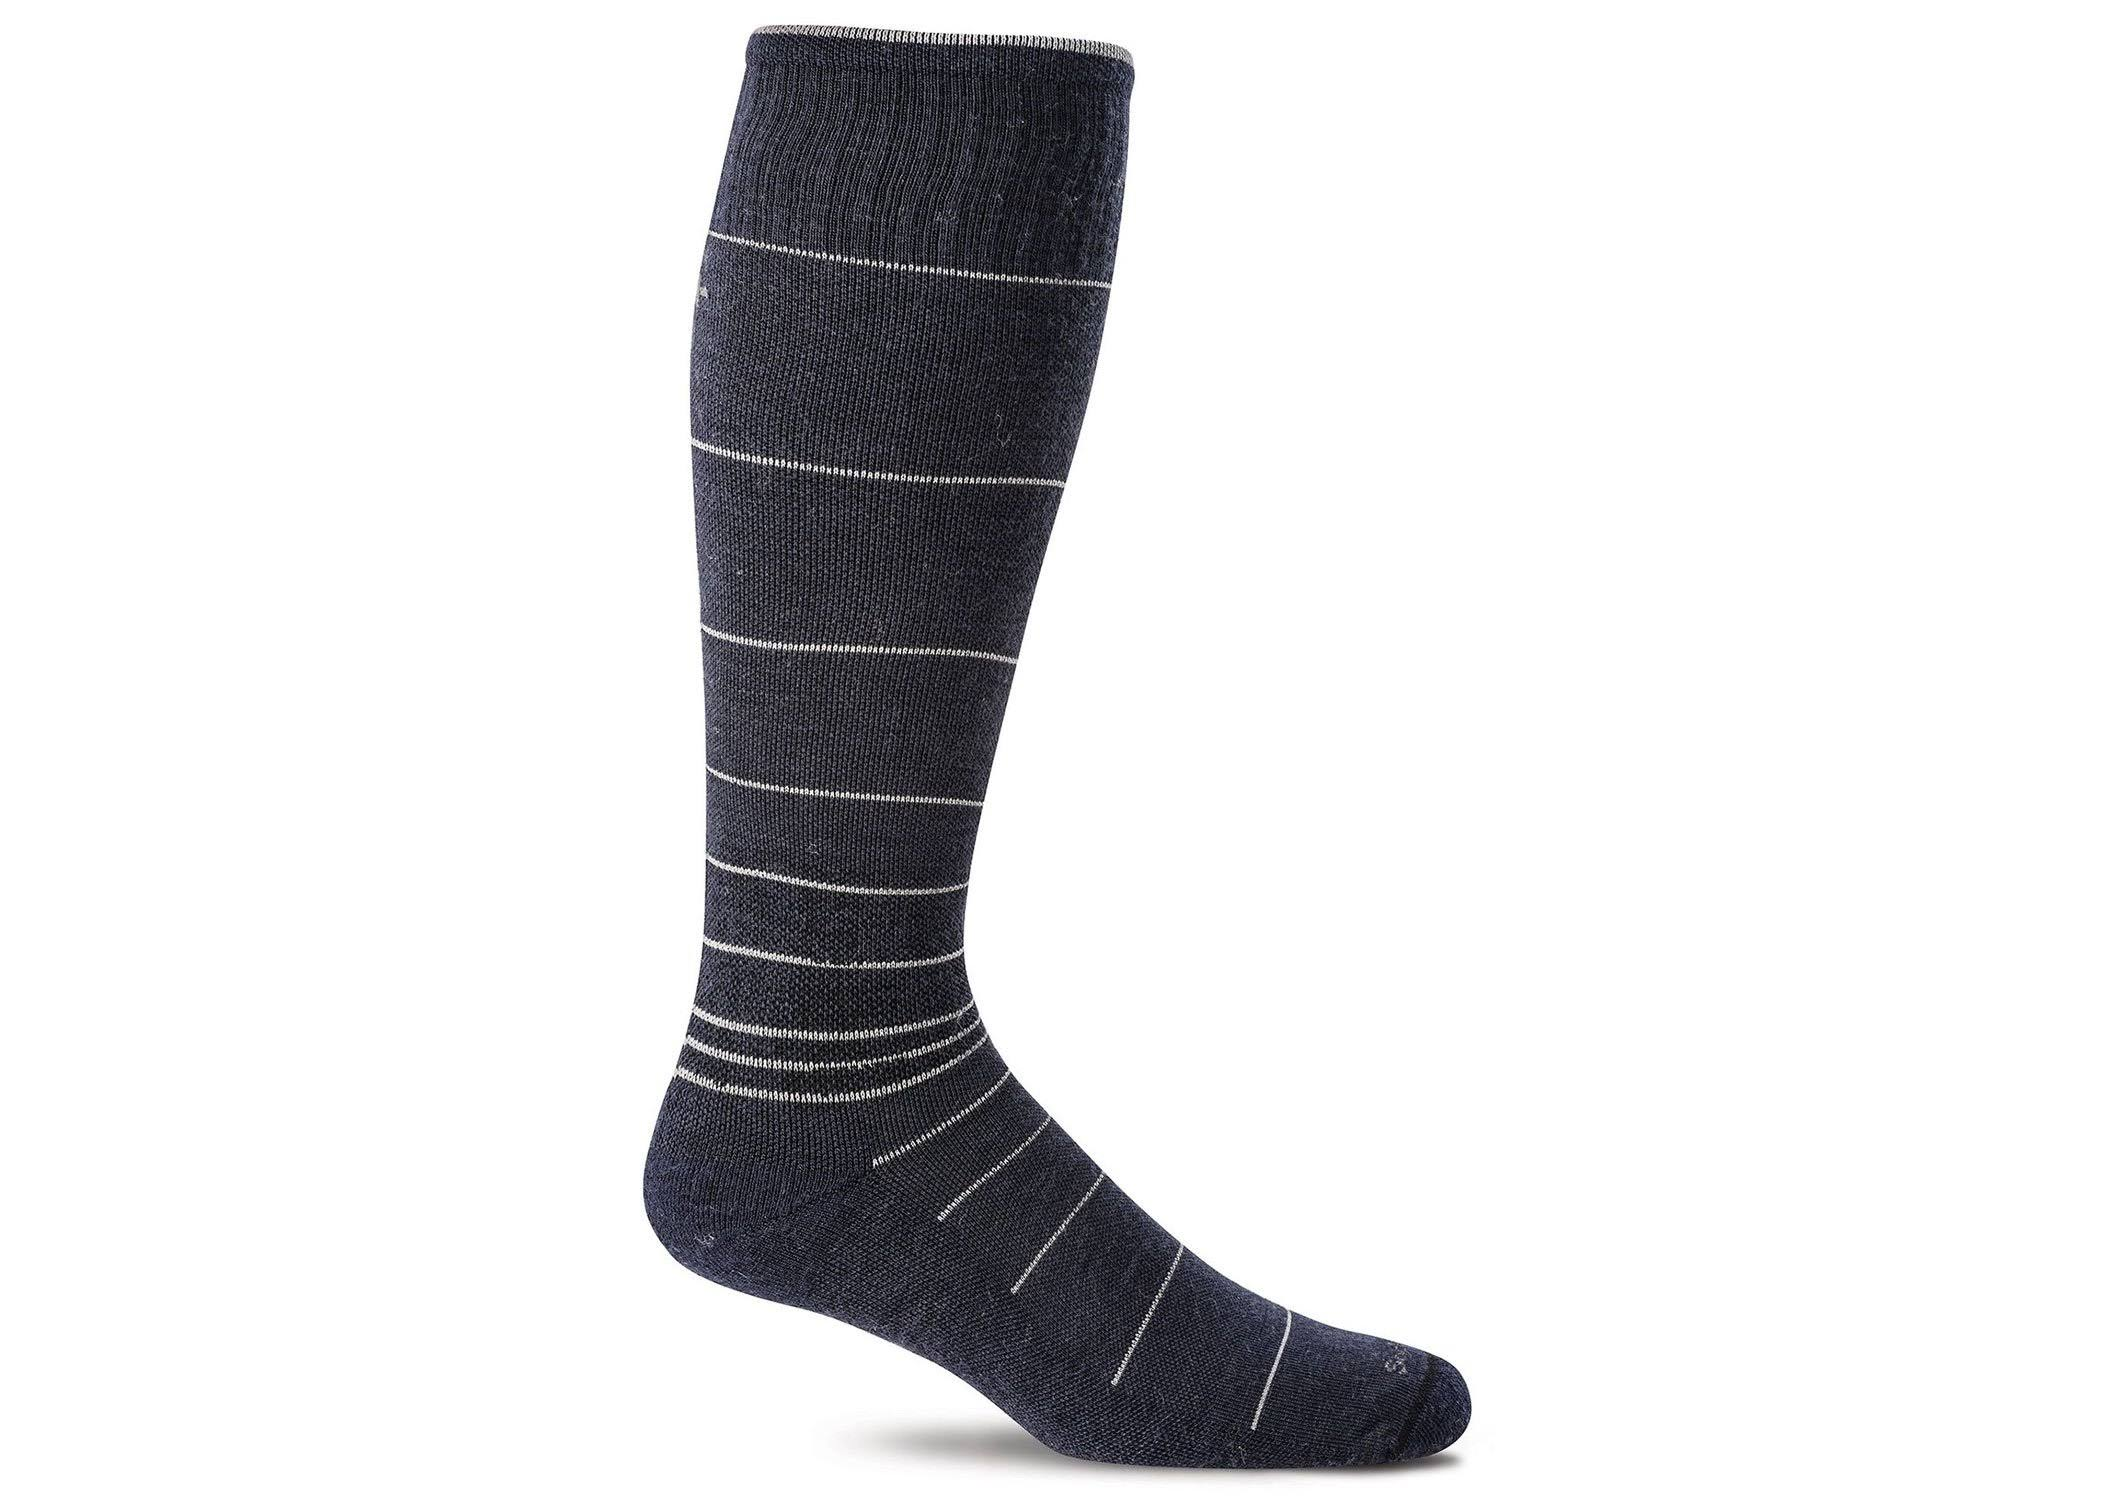 Sockwell Men's Circulator Compression Socks, Navy, Medium/Large